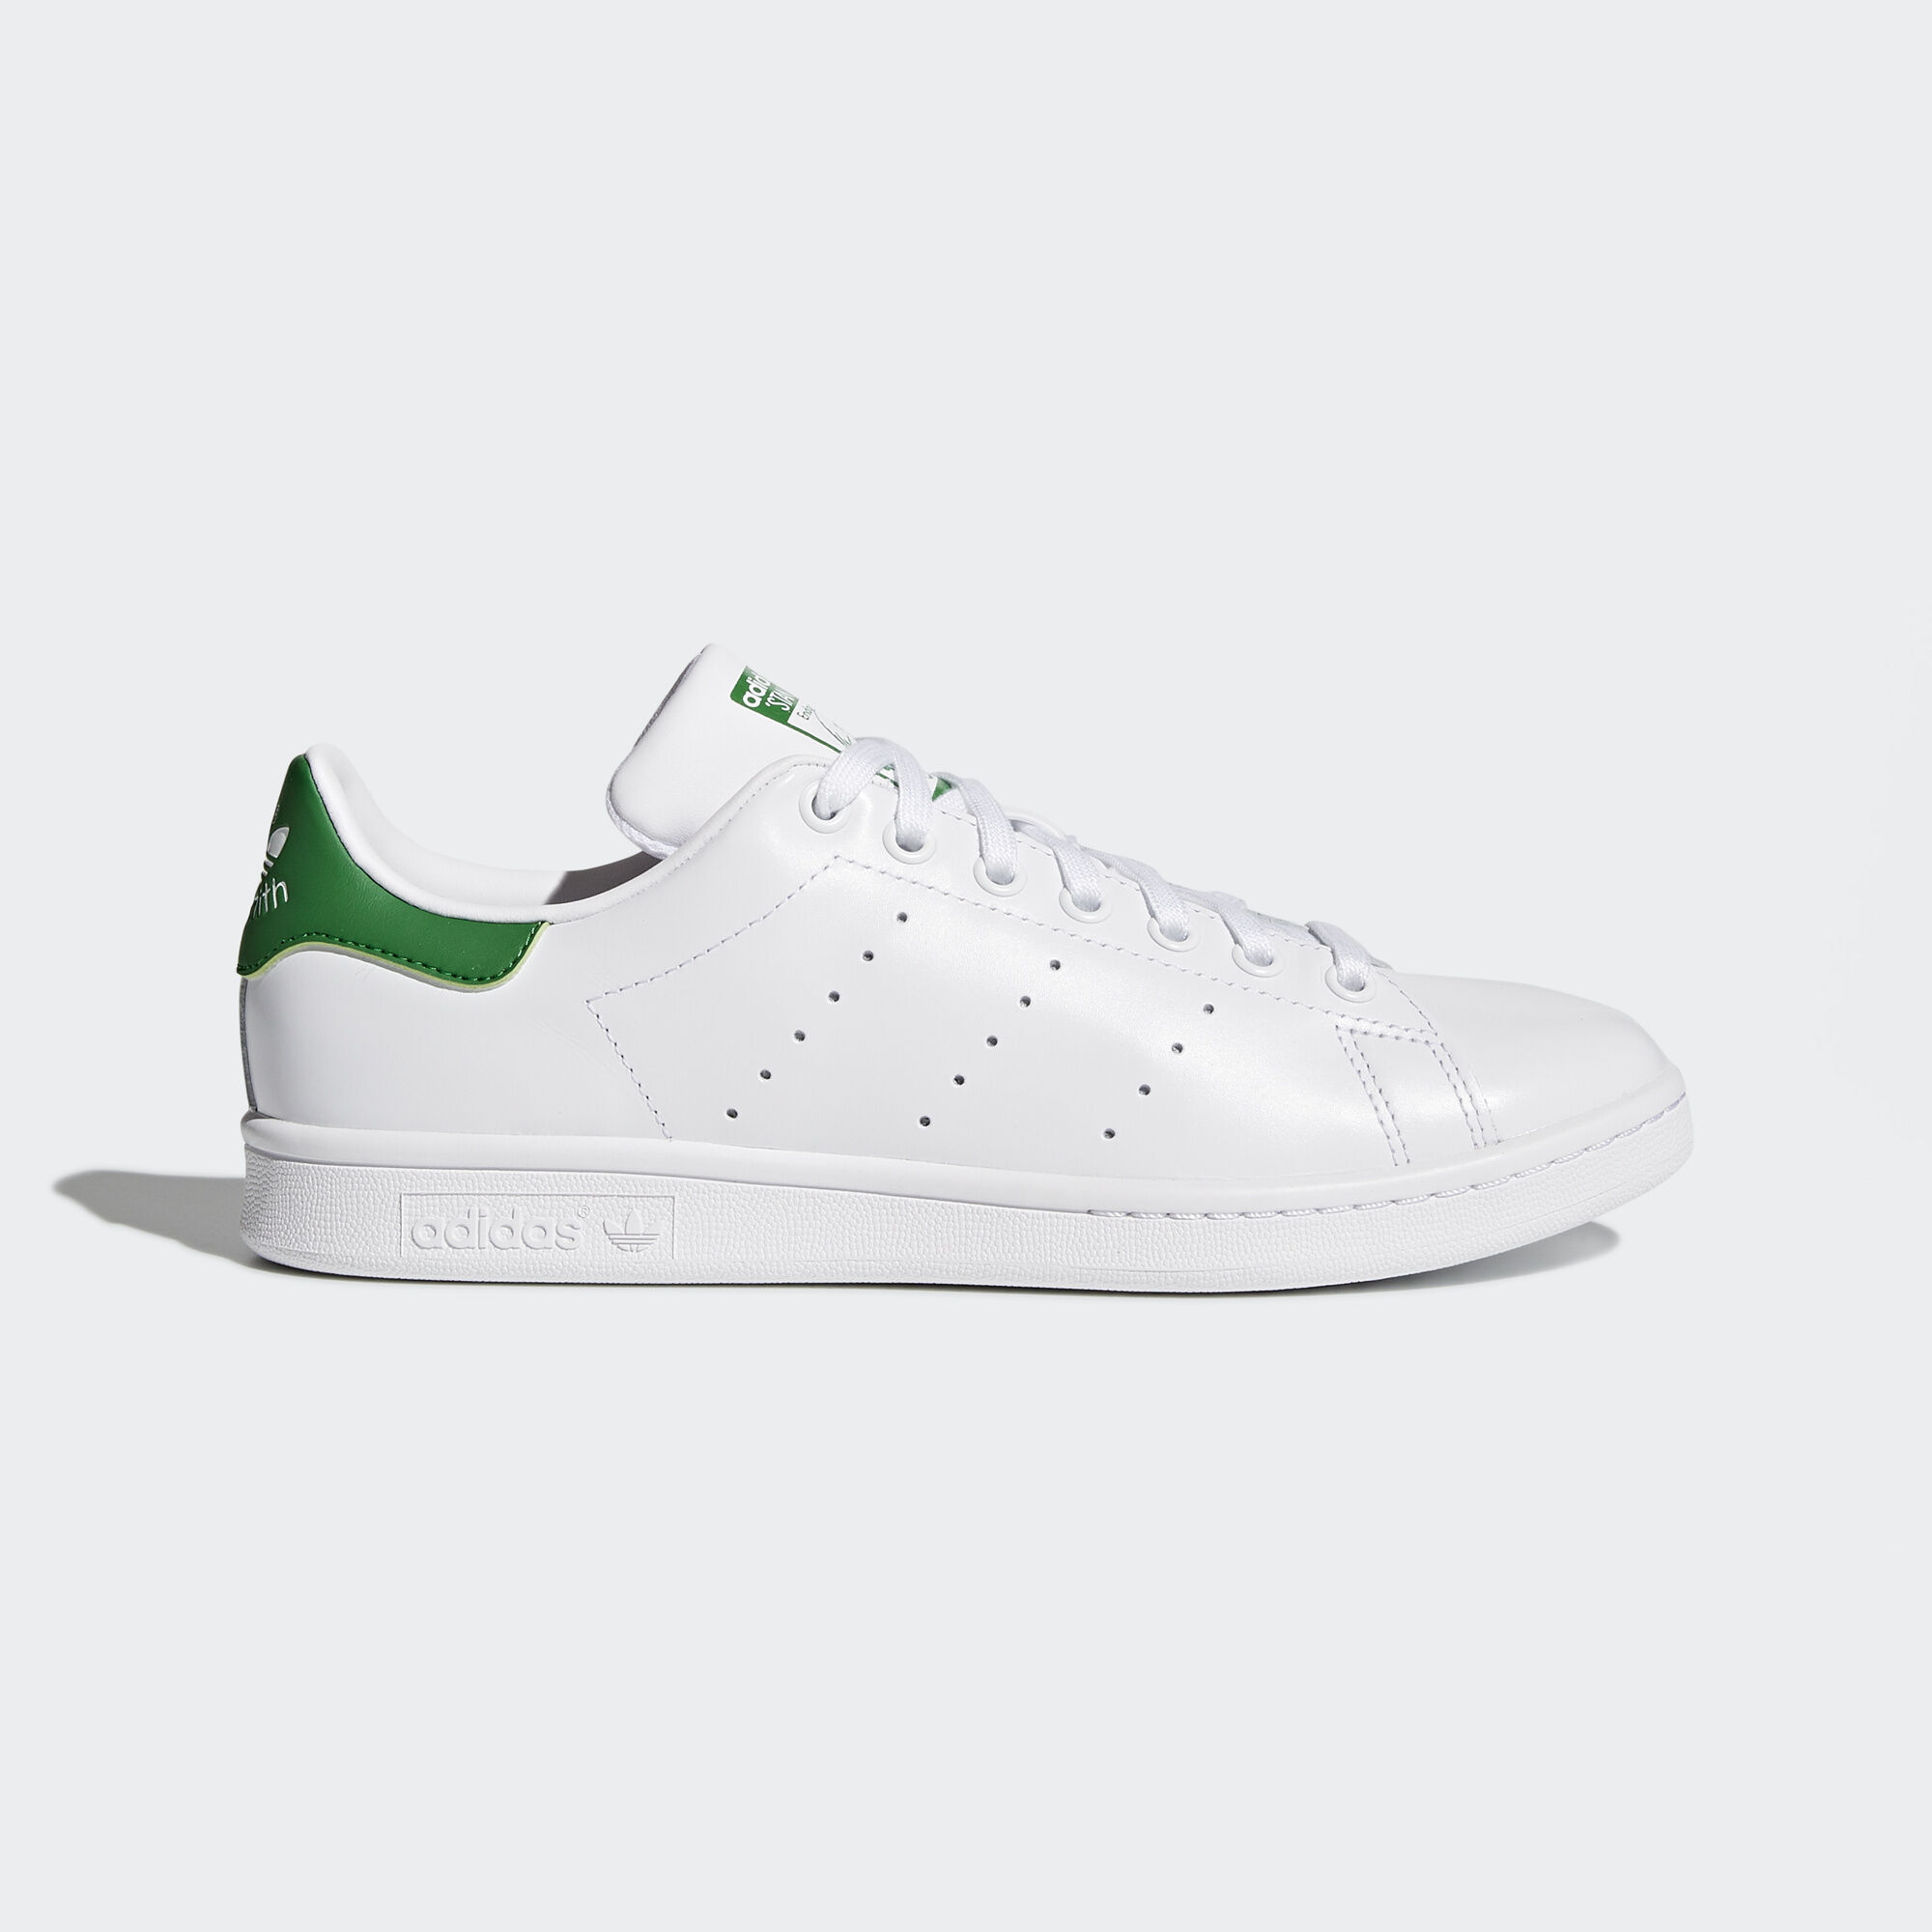 Adidas Superstar White All White